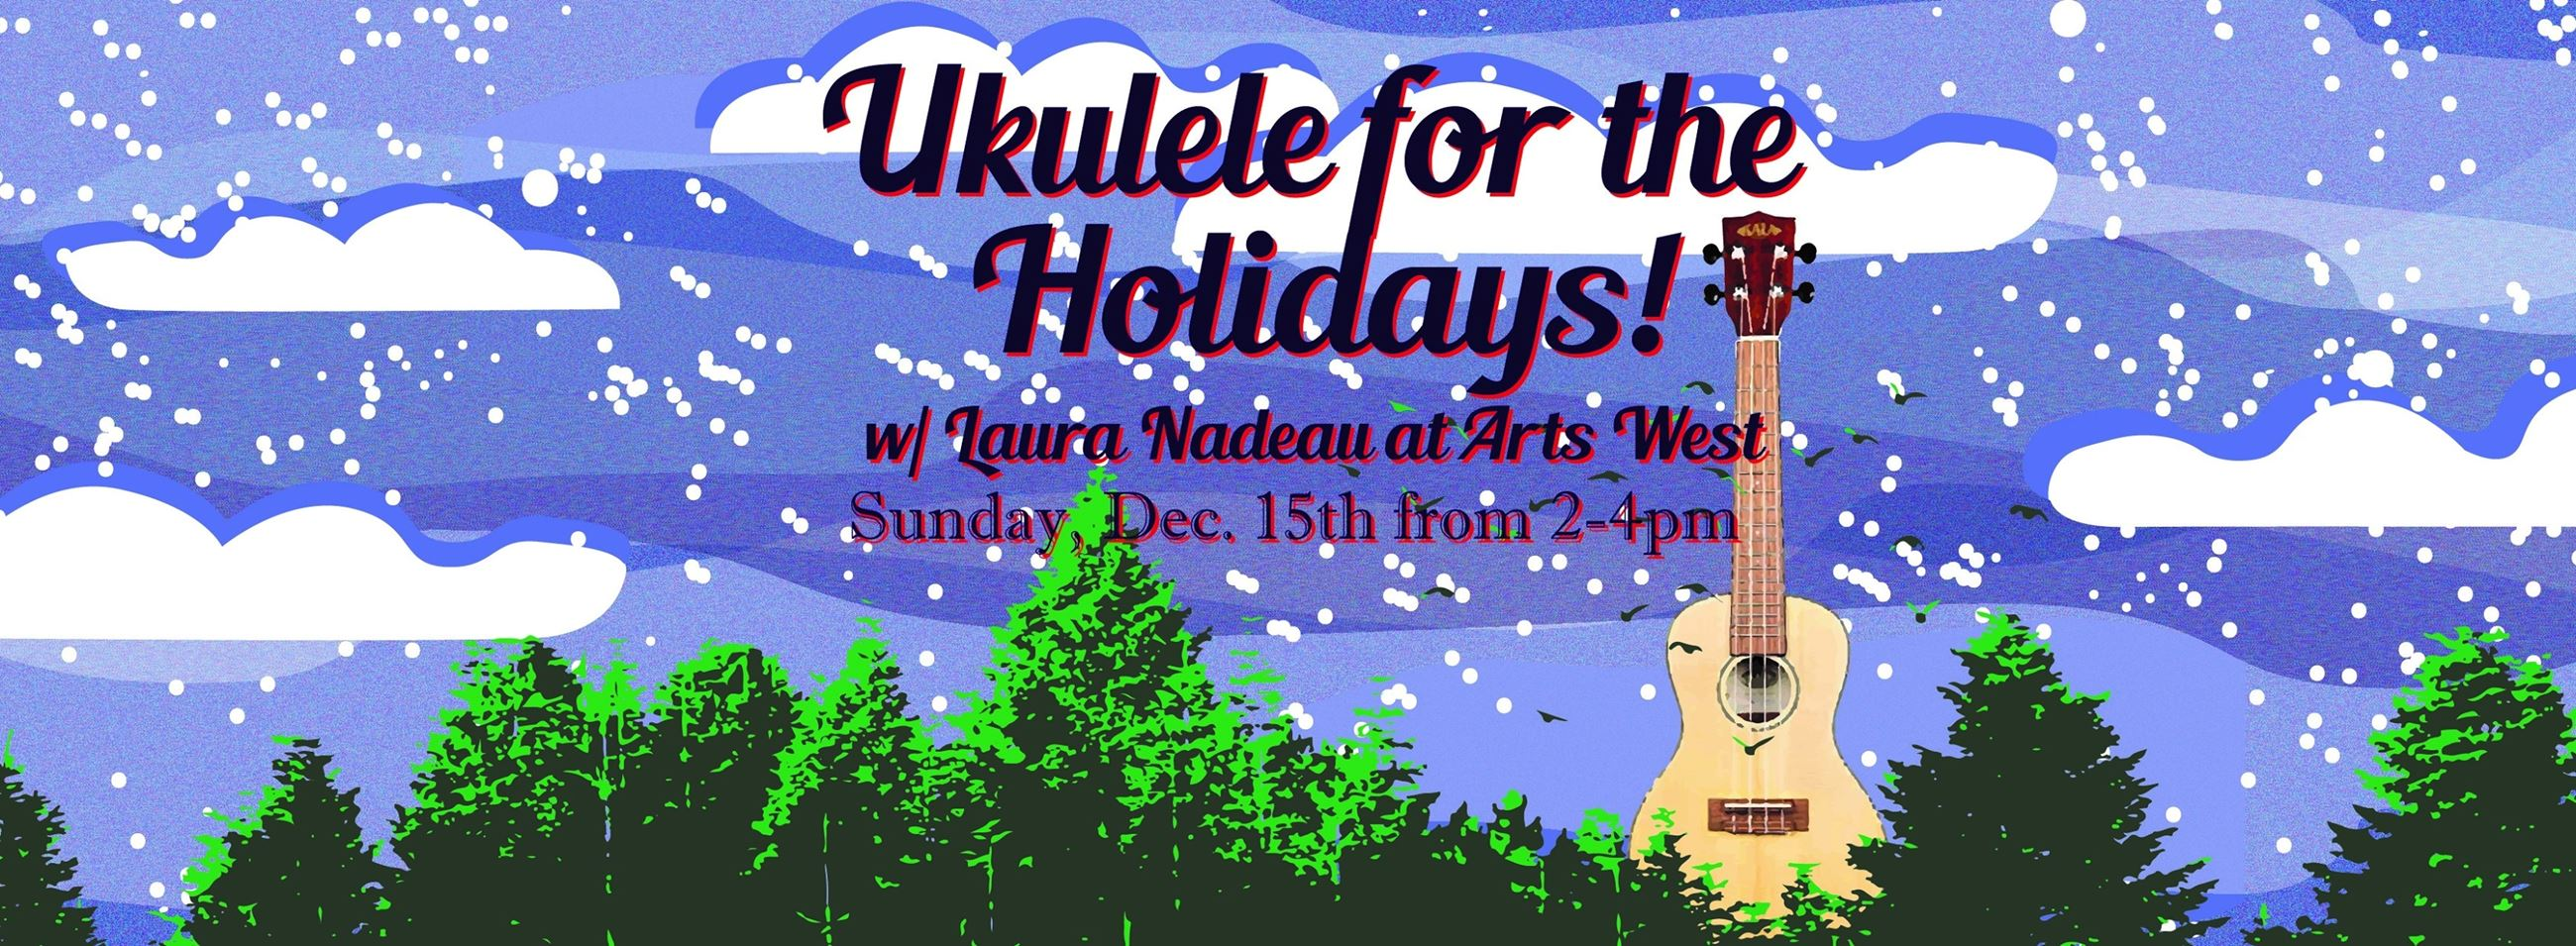 Ukulele for the Holidays Poster